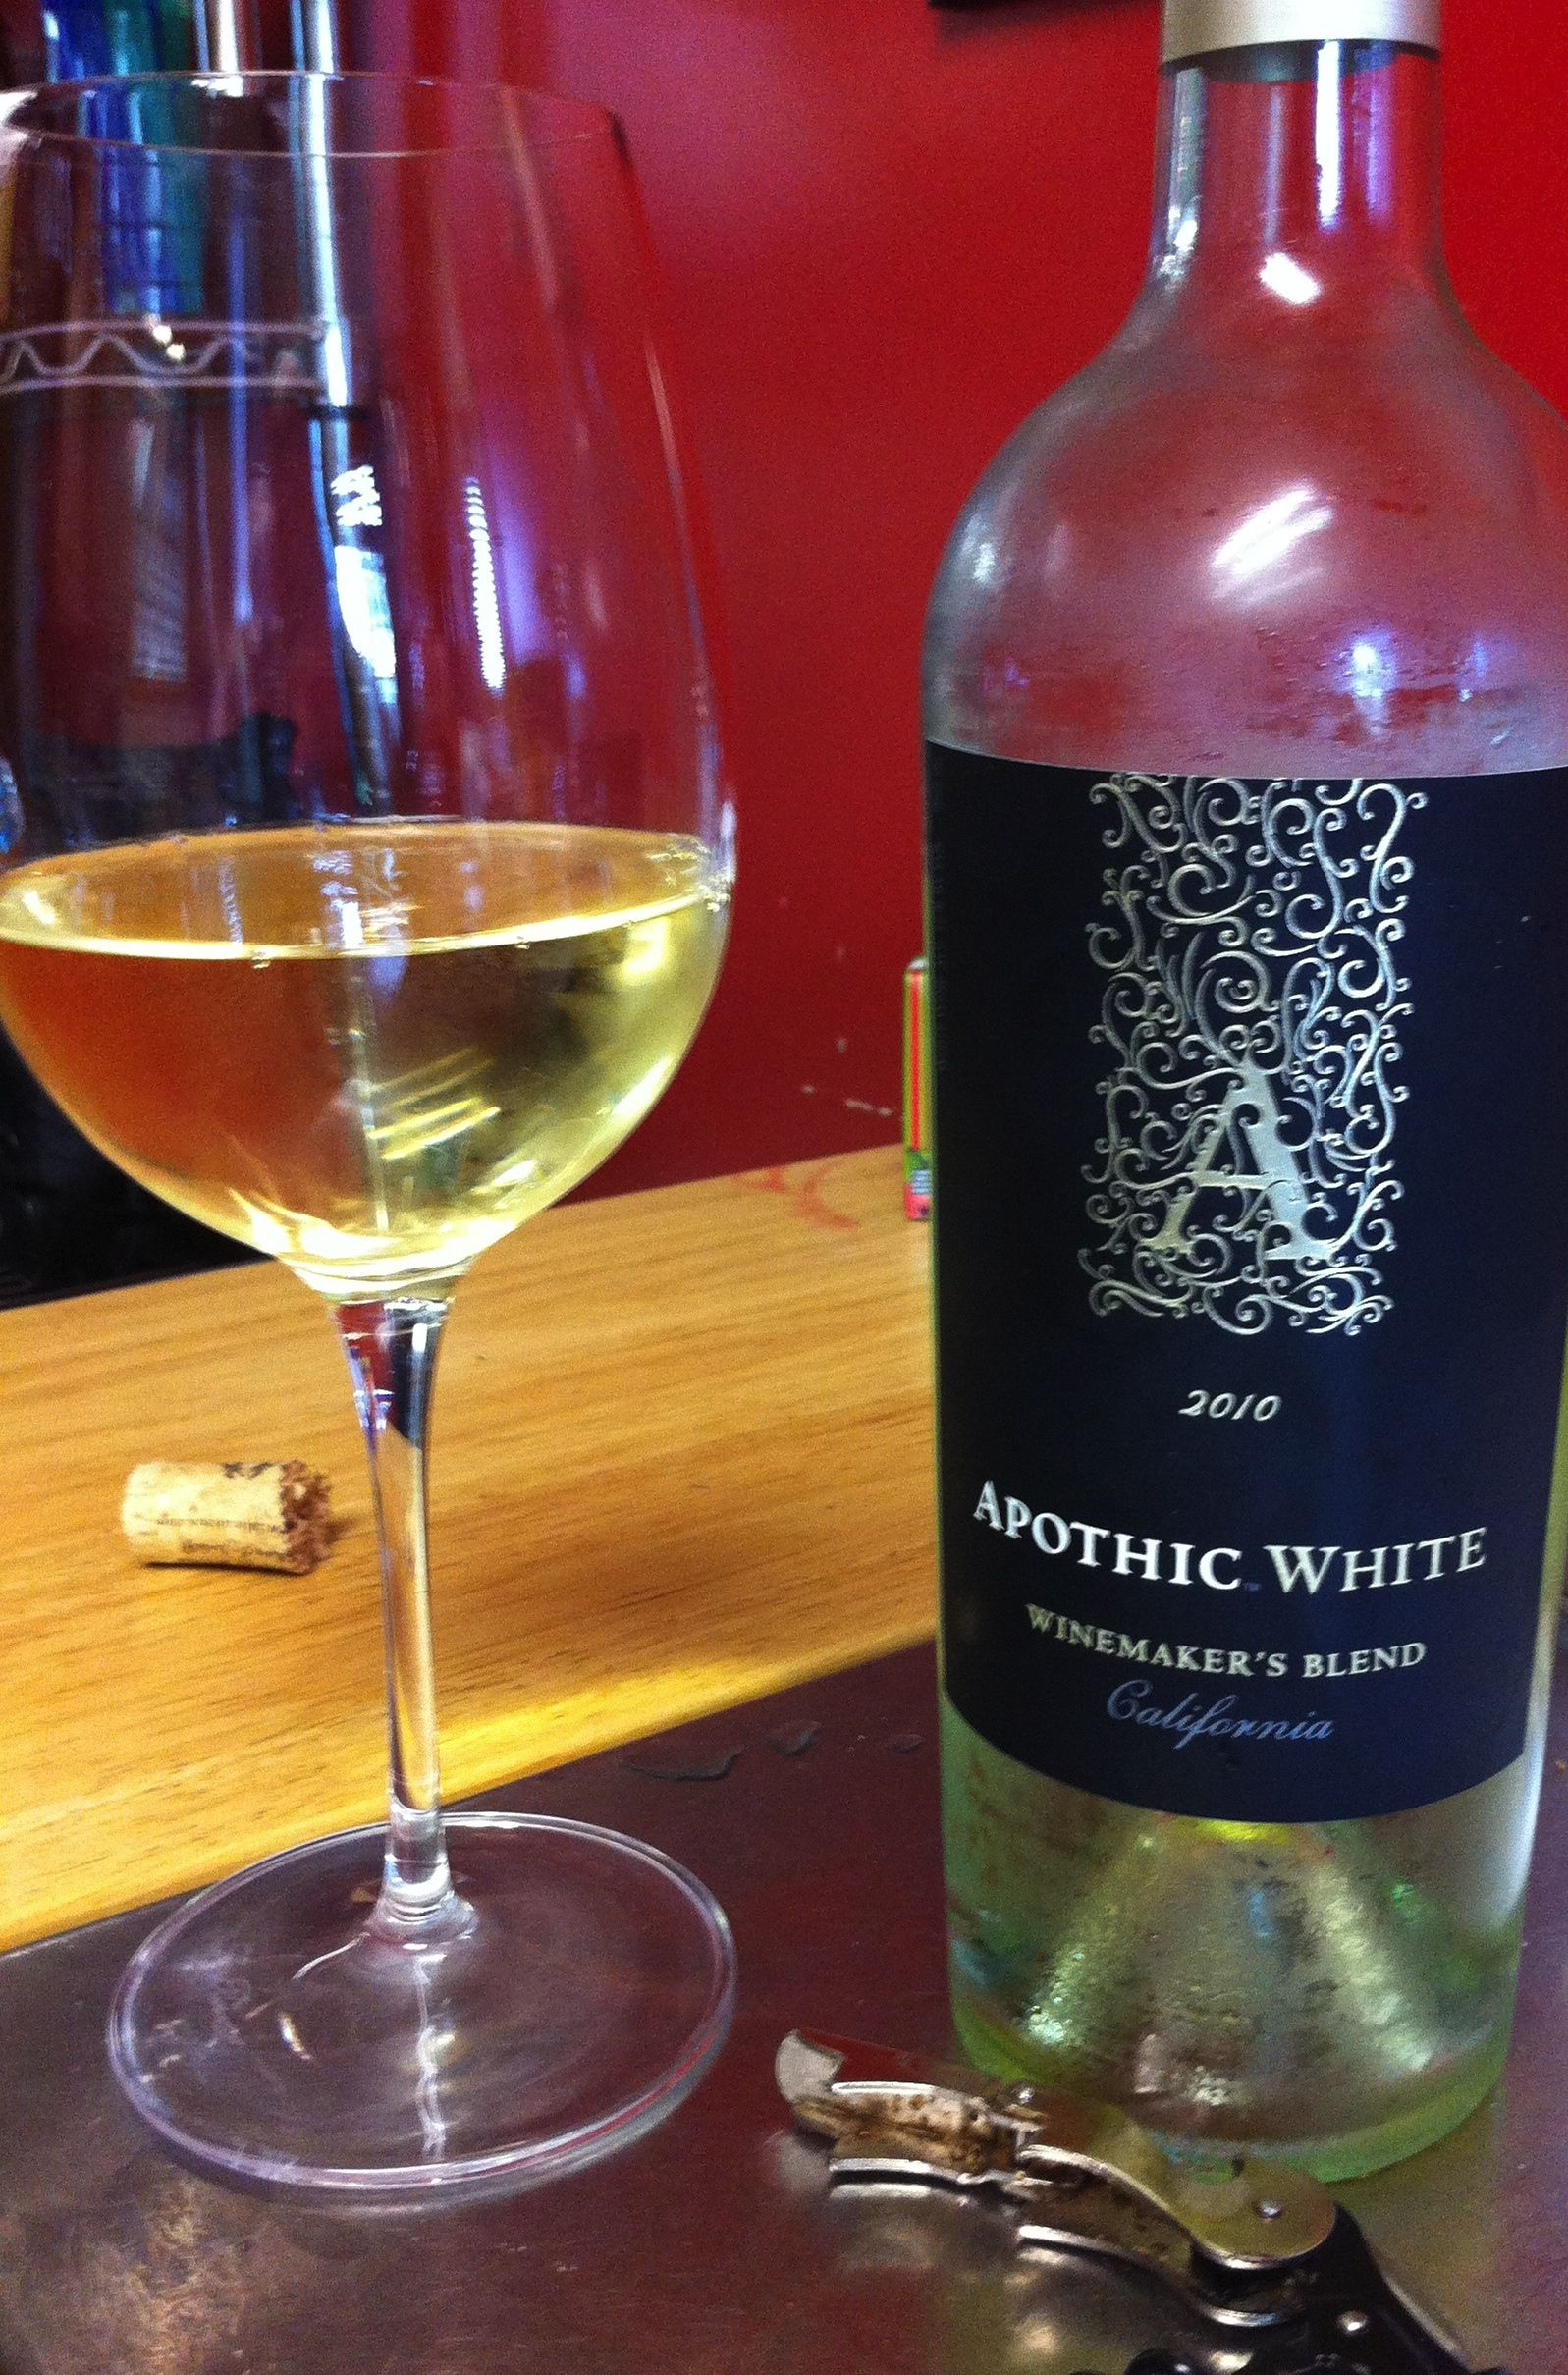 Delicious White Blend Great Alternative To Menage E Trois Not As Fruity A Little More Oaky Good Balance Of Dry Sweet Wine Bottle Winemaking Alcoholic Drinks